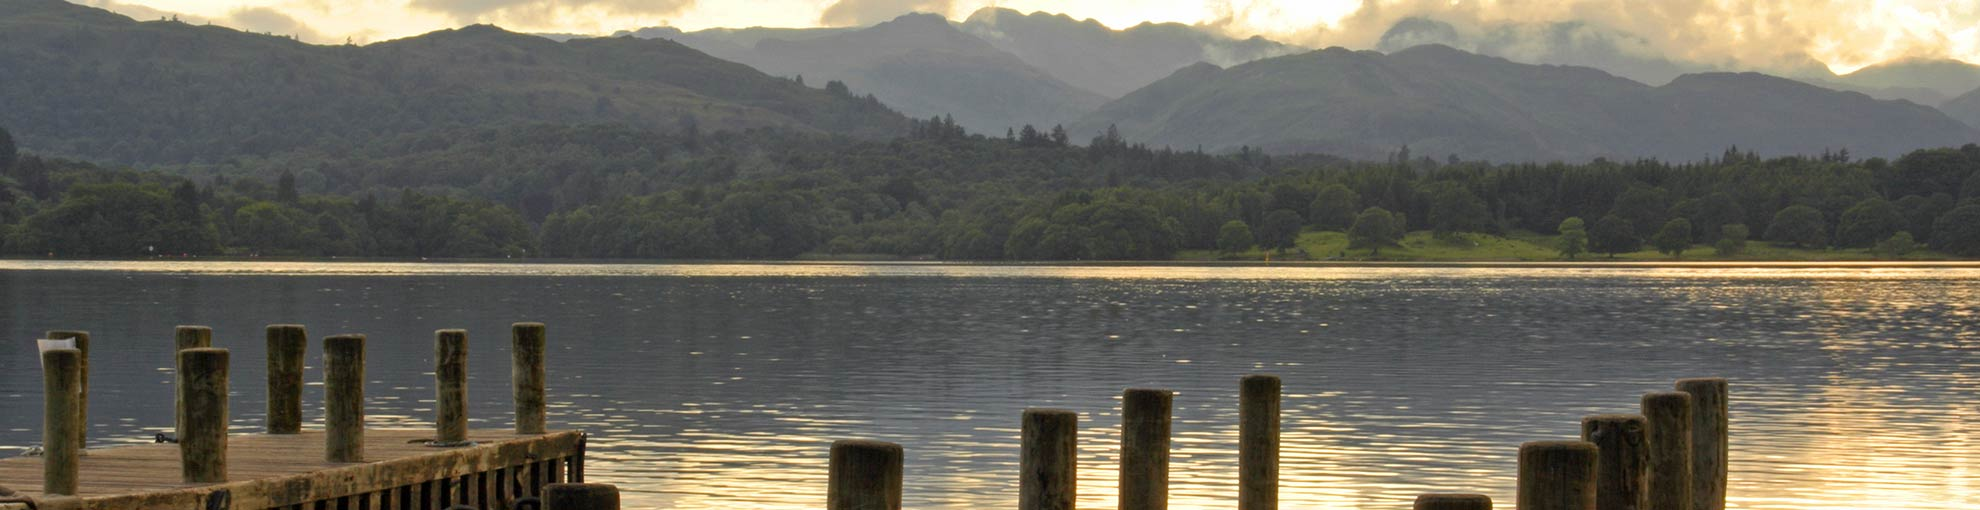 A jetty and view of Lake Windermere